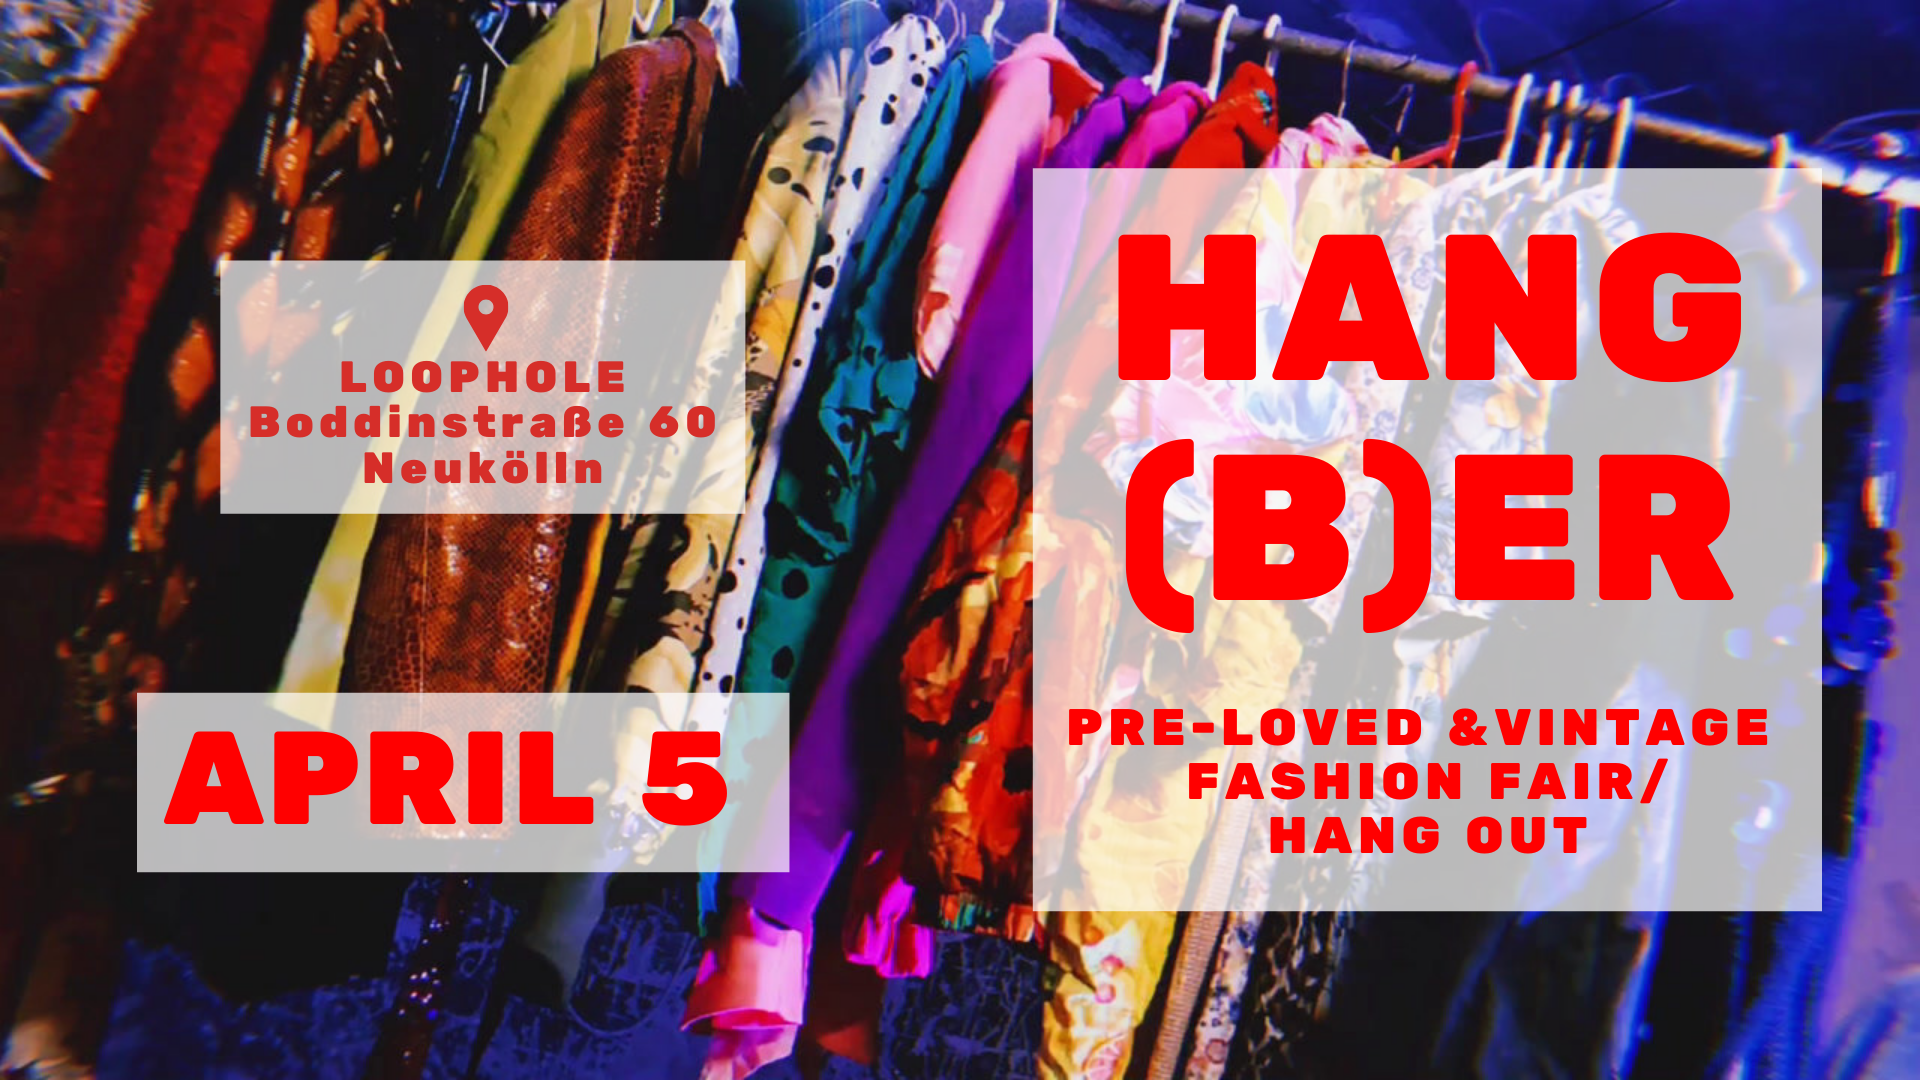 #HANGBER // pre-loved & vintage fashion fair and hang out